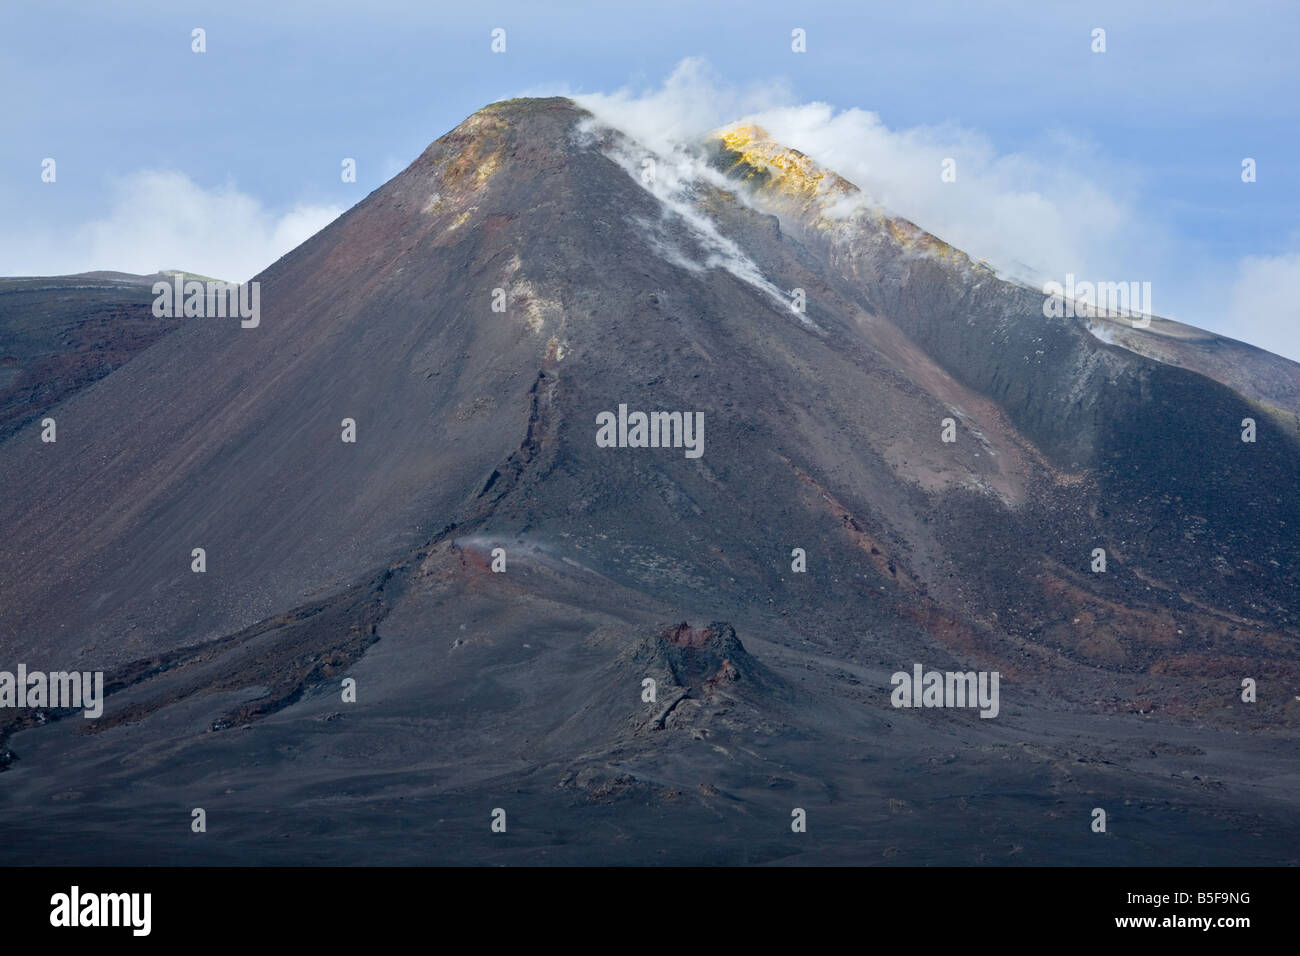 Southeast crater of Mt. Etna volcano - Stock Image